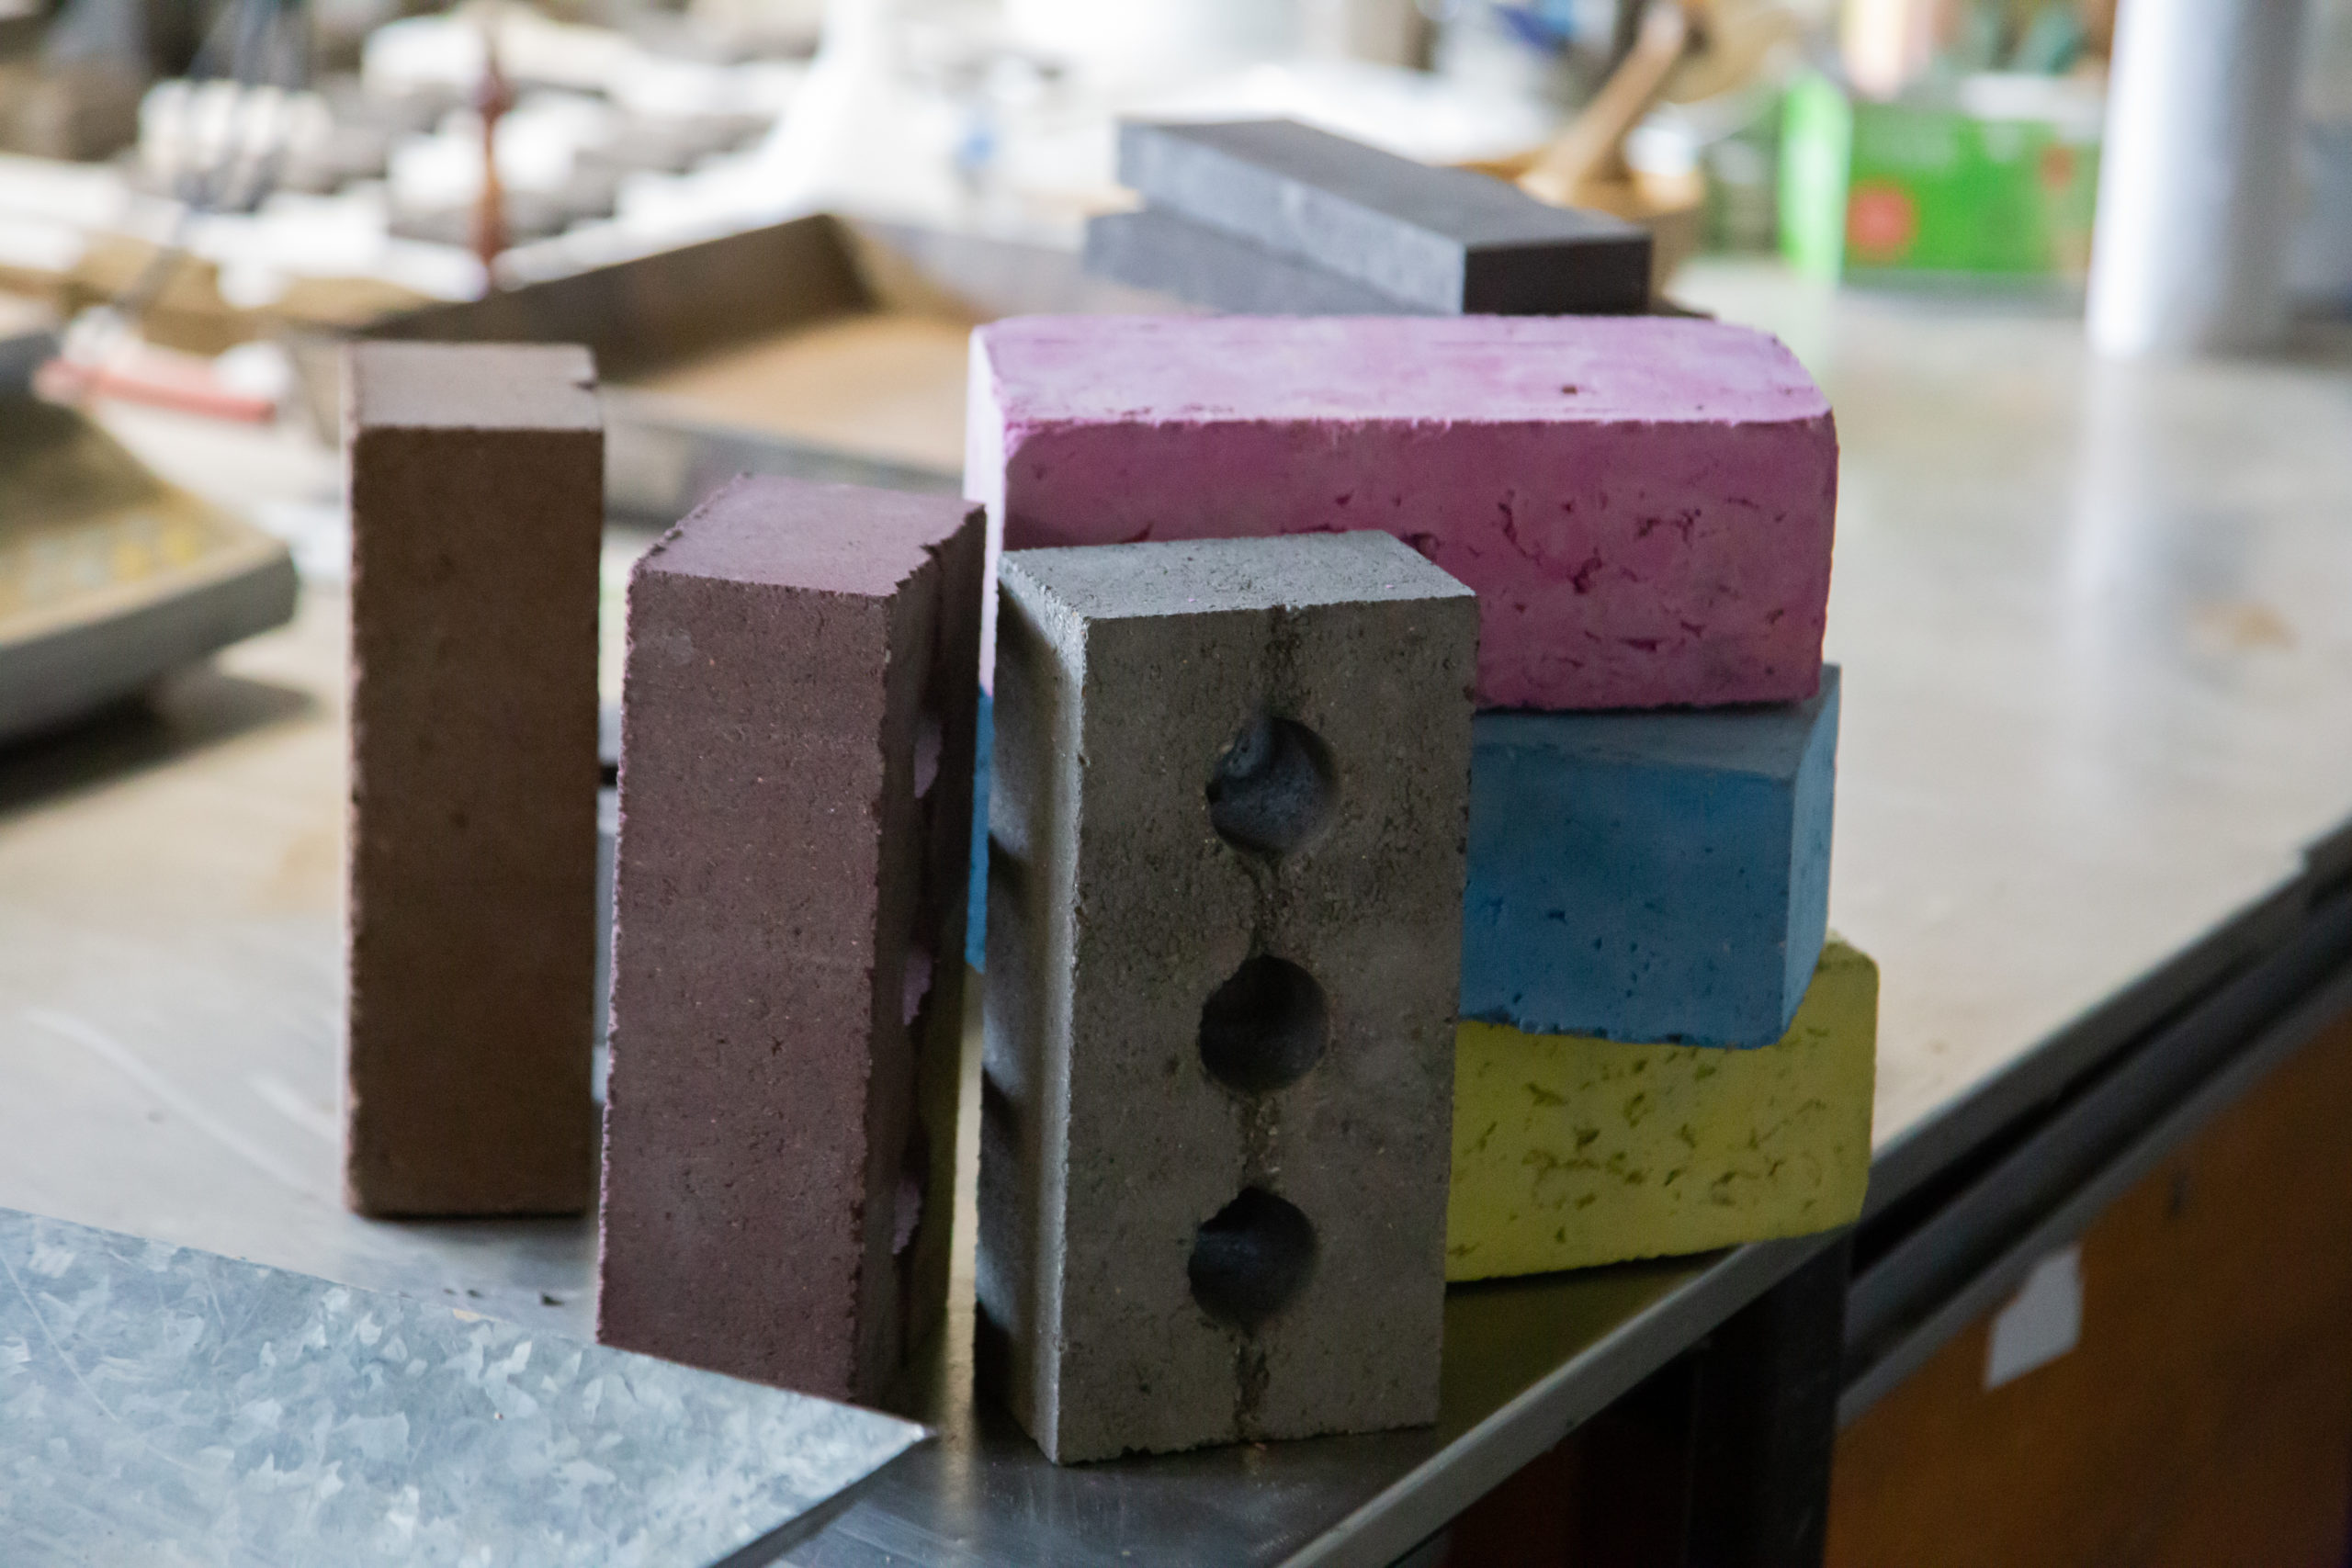 Scottish startup Kenoteq K-Briq more sustainable building brick made of 90% construction waste